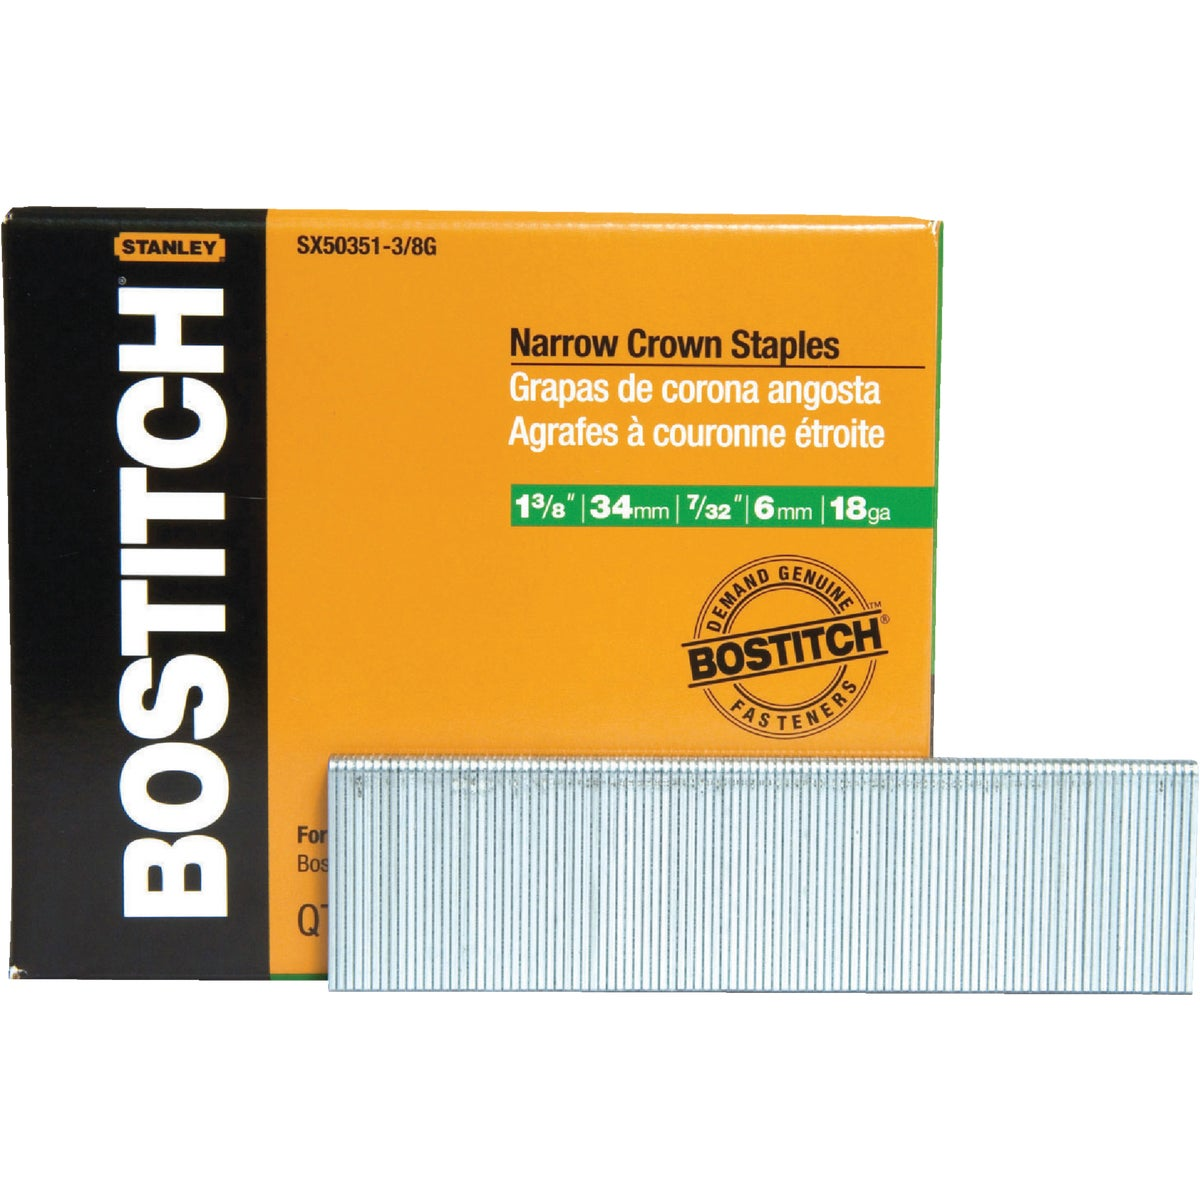 "1-3/8""GALV FINISH STAPLE - SX50351-3/8G by Stanley Bostitch"